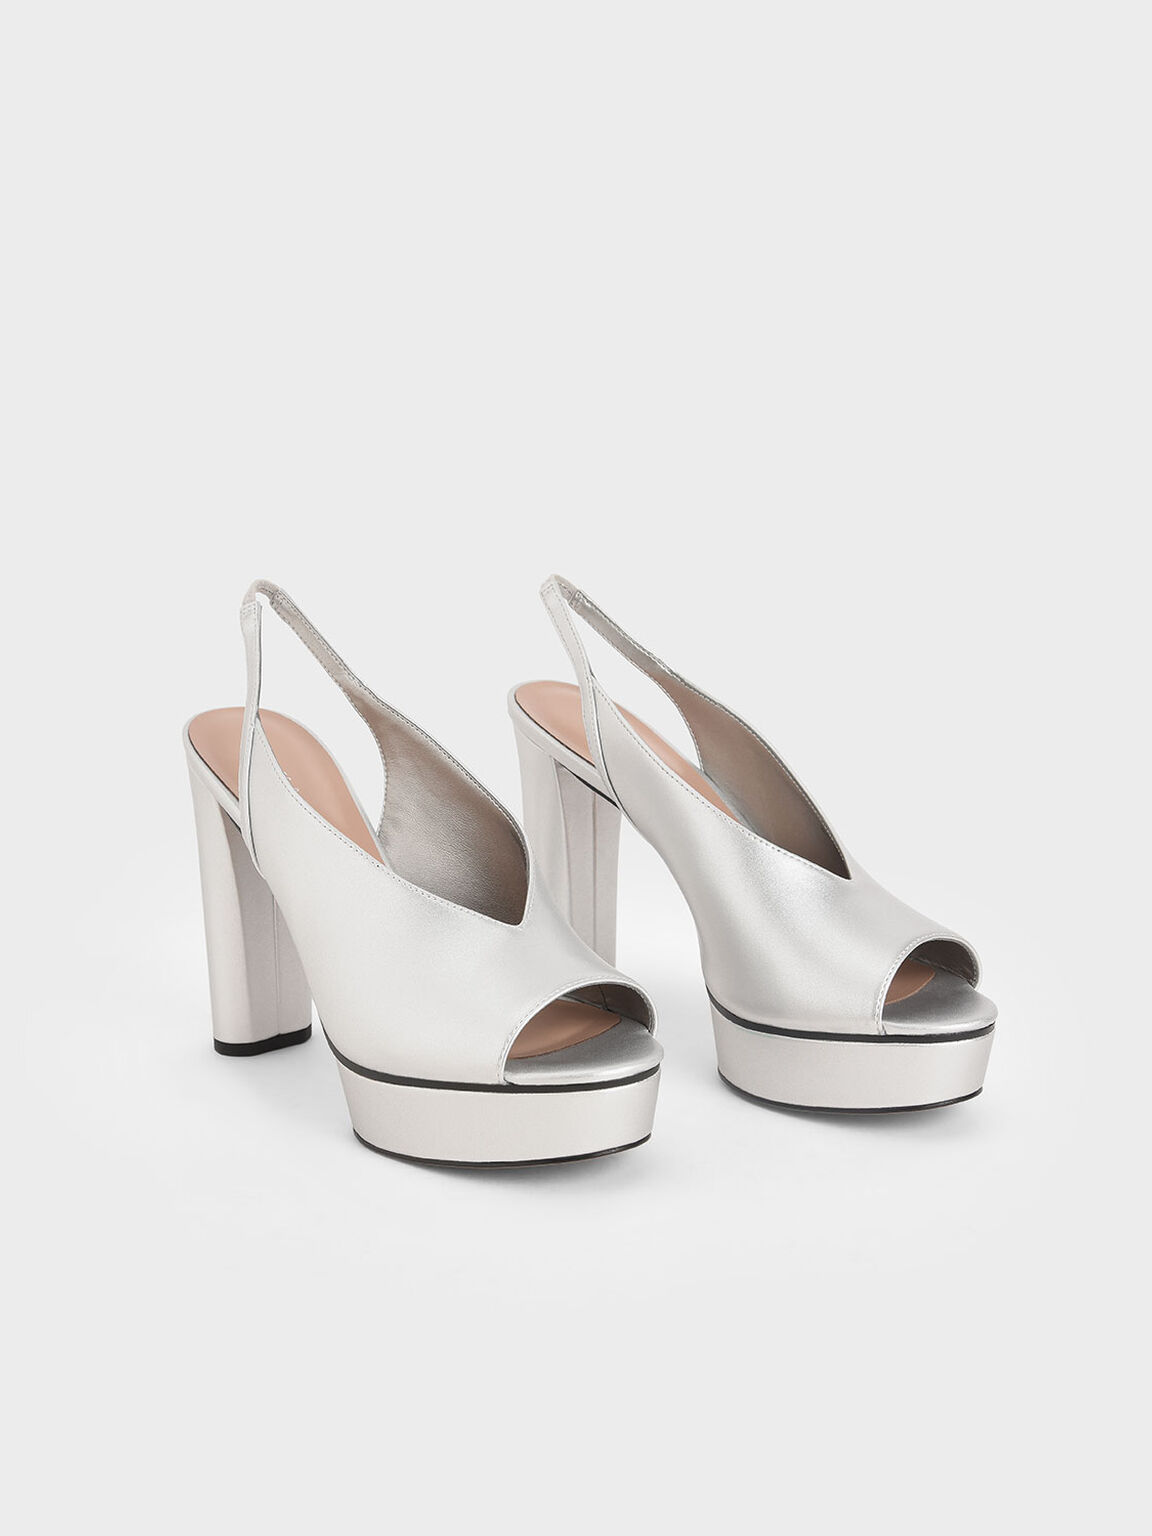 Metallic V-Cut Slingback Platforms, Silver, hi-res